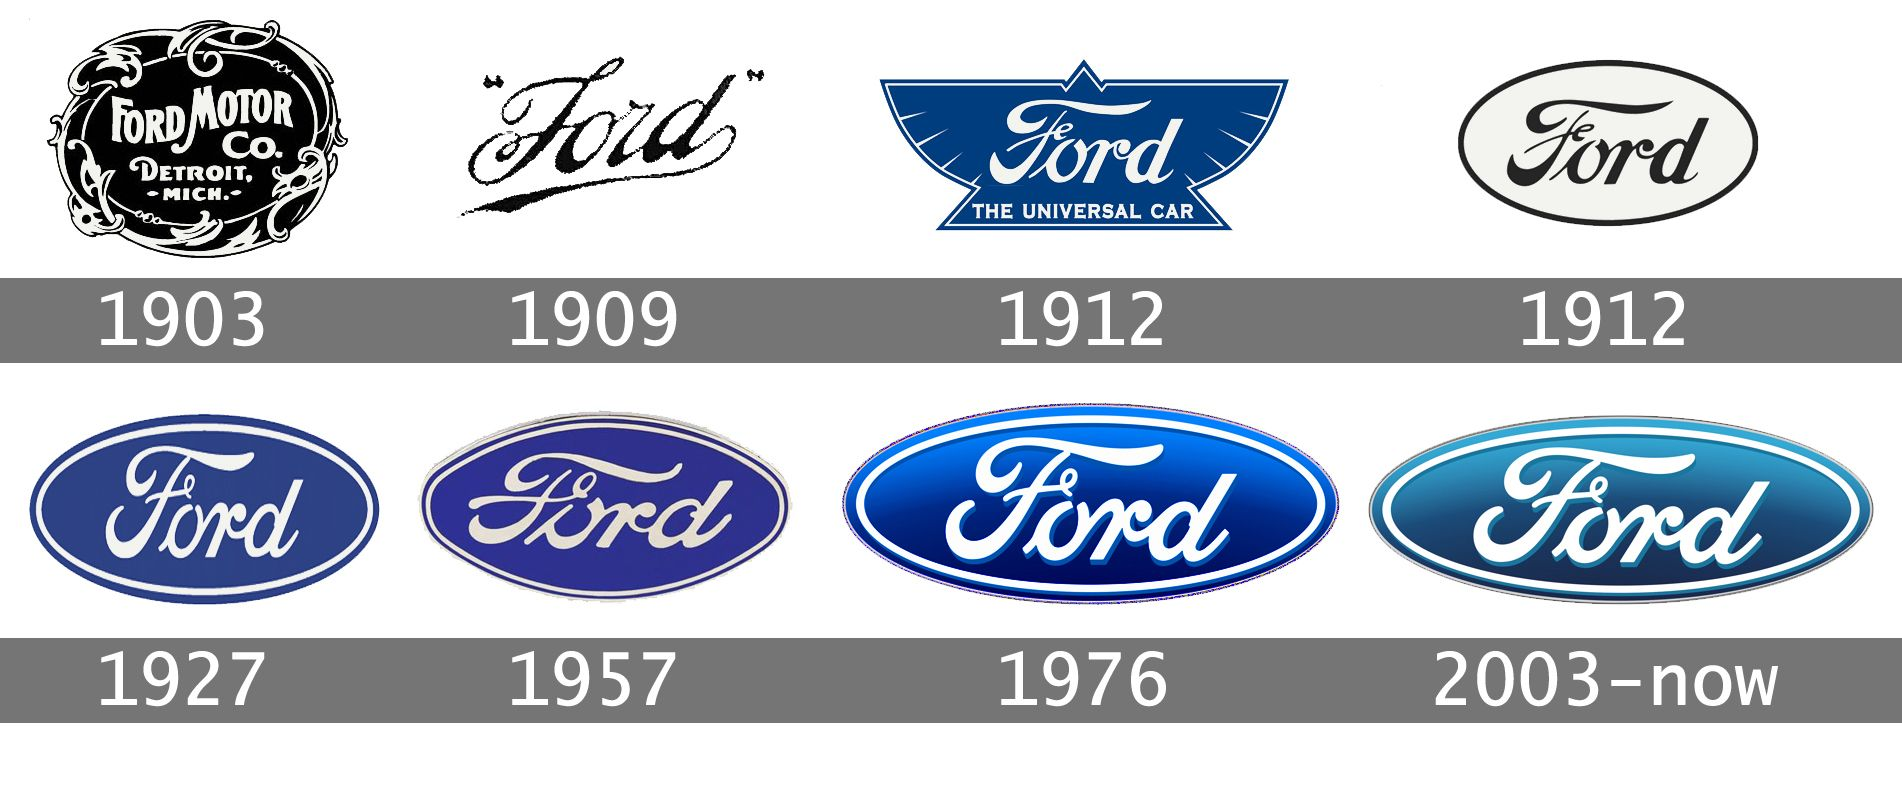 Ford Logo - Ford Logo, Ford Symbol, Meaning, History and Evolution